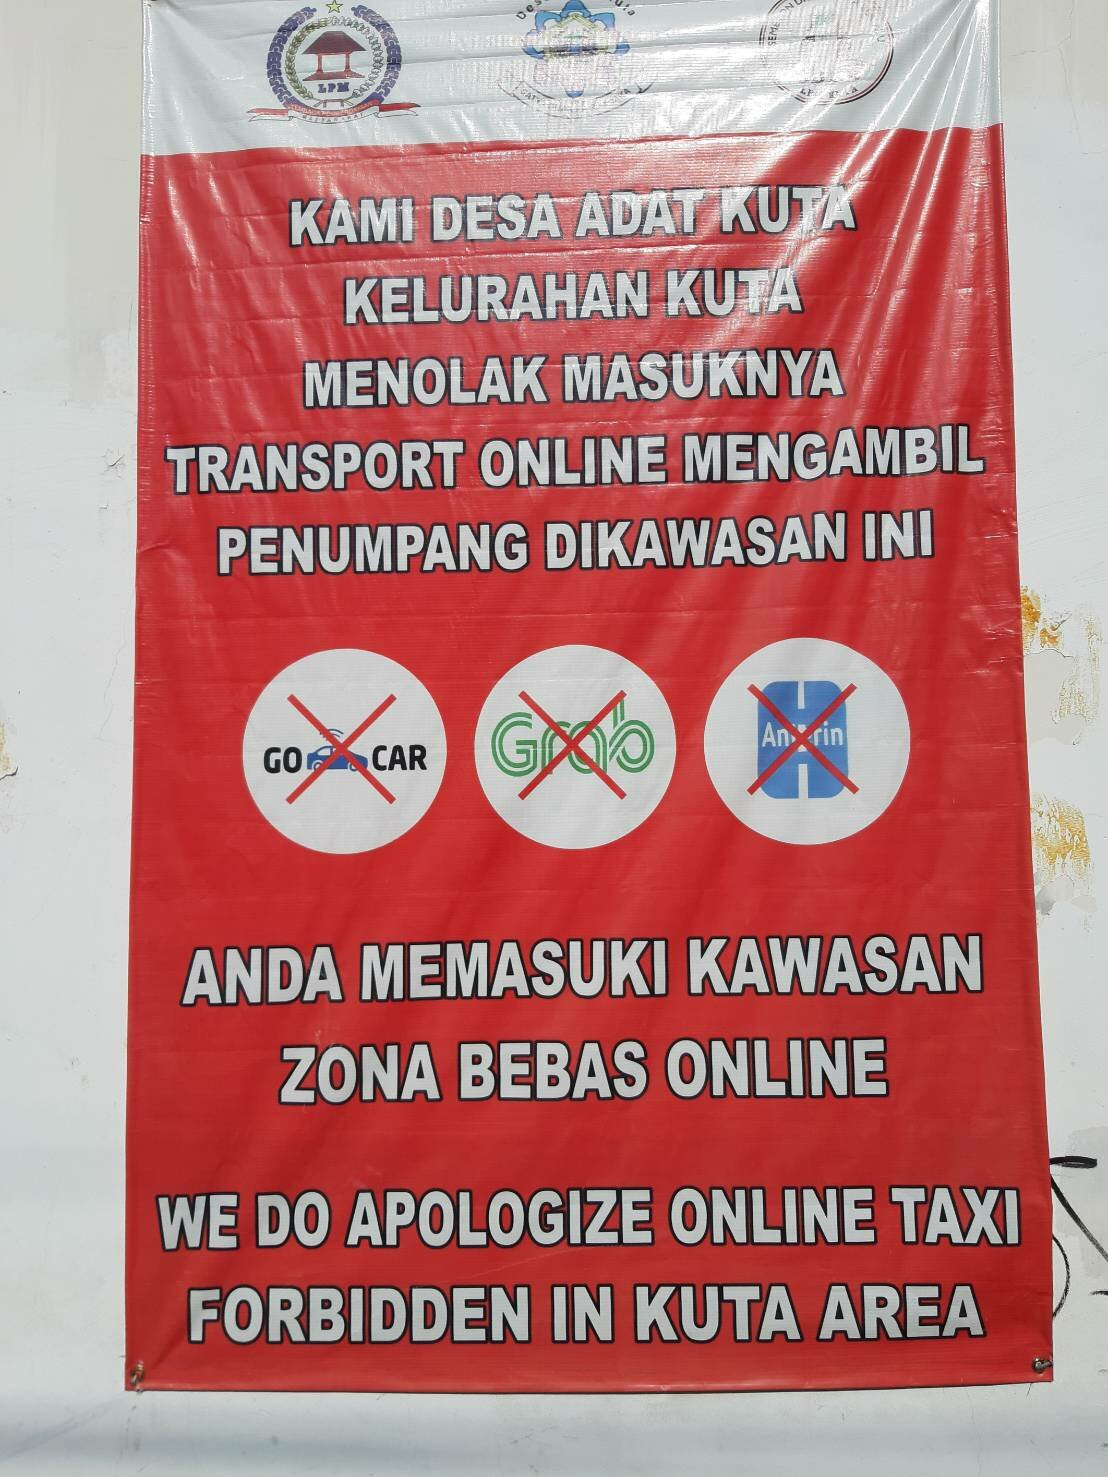 Taxis not allowed in Kuta.